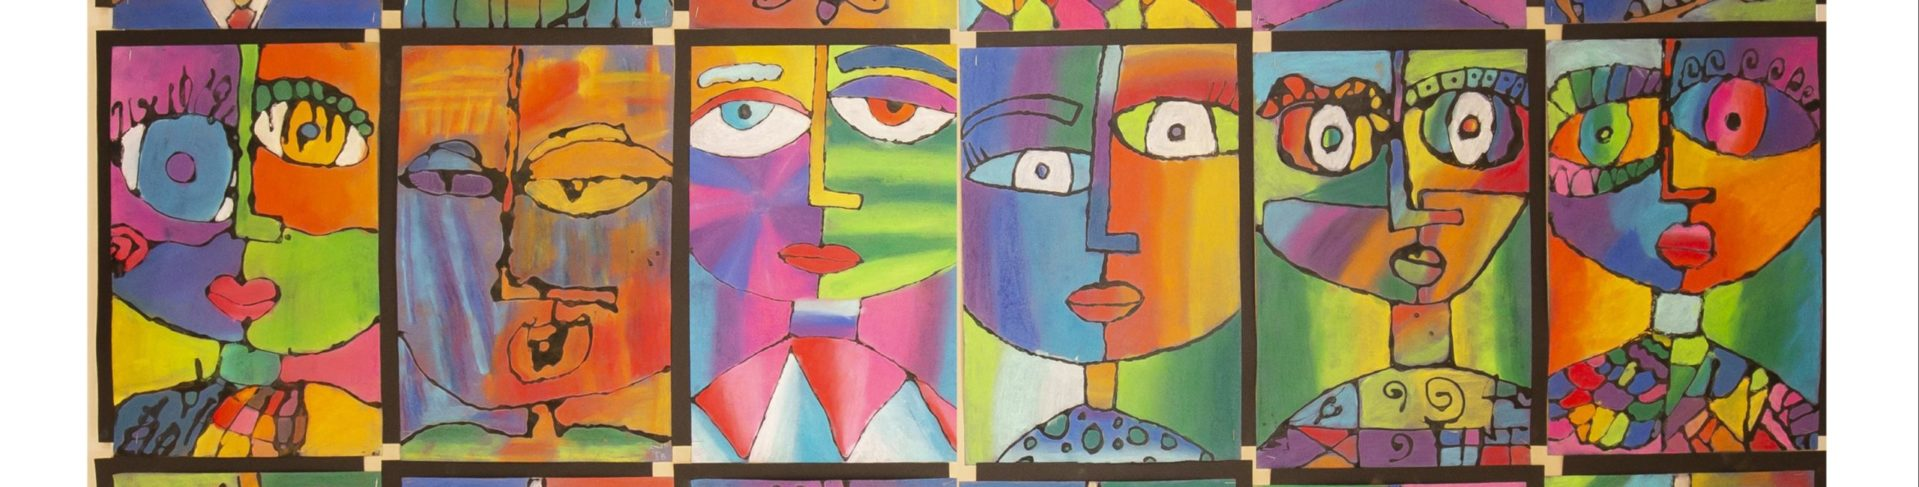 image of various modern are faces in different colors and shapes all patterned into squares on a multicolored art background